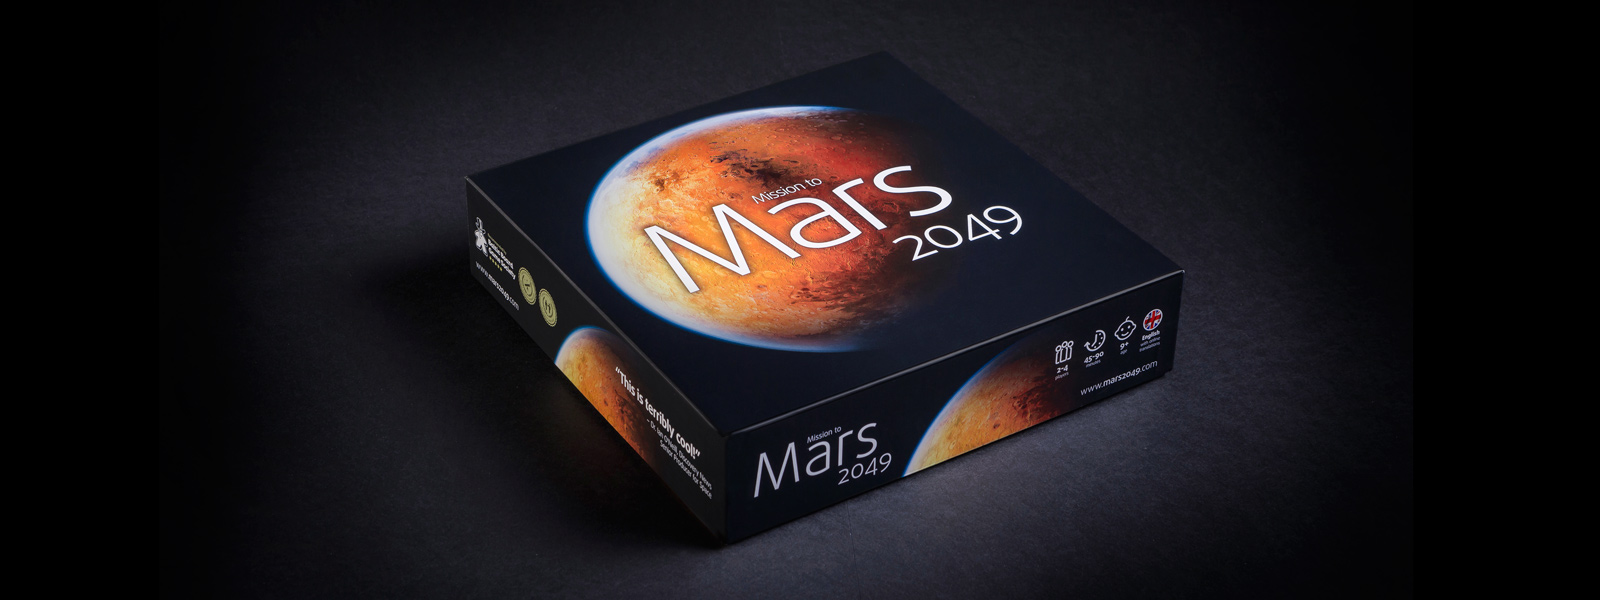 Mission to Mars 2049 Pedro Topete Blog (1)